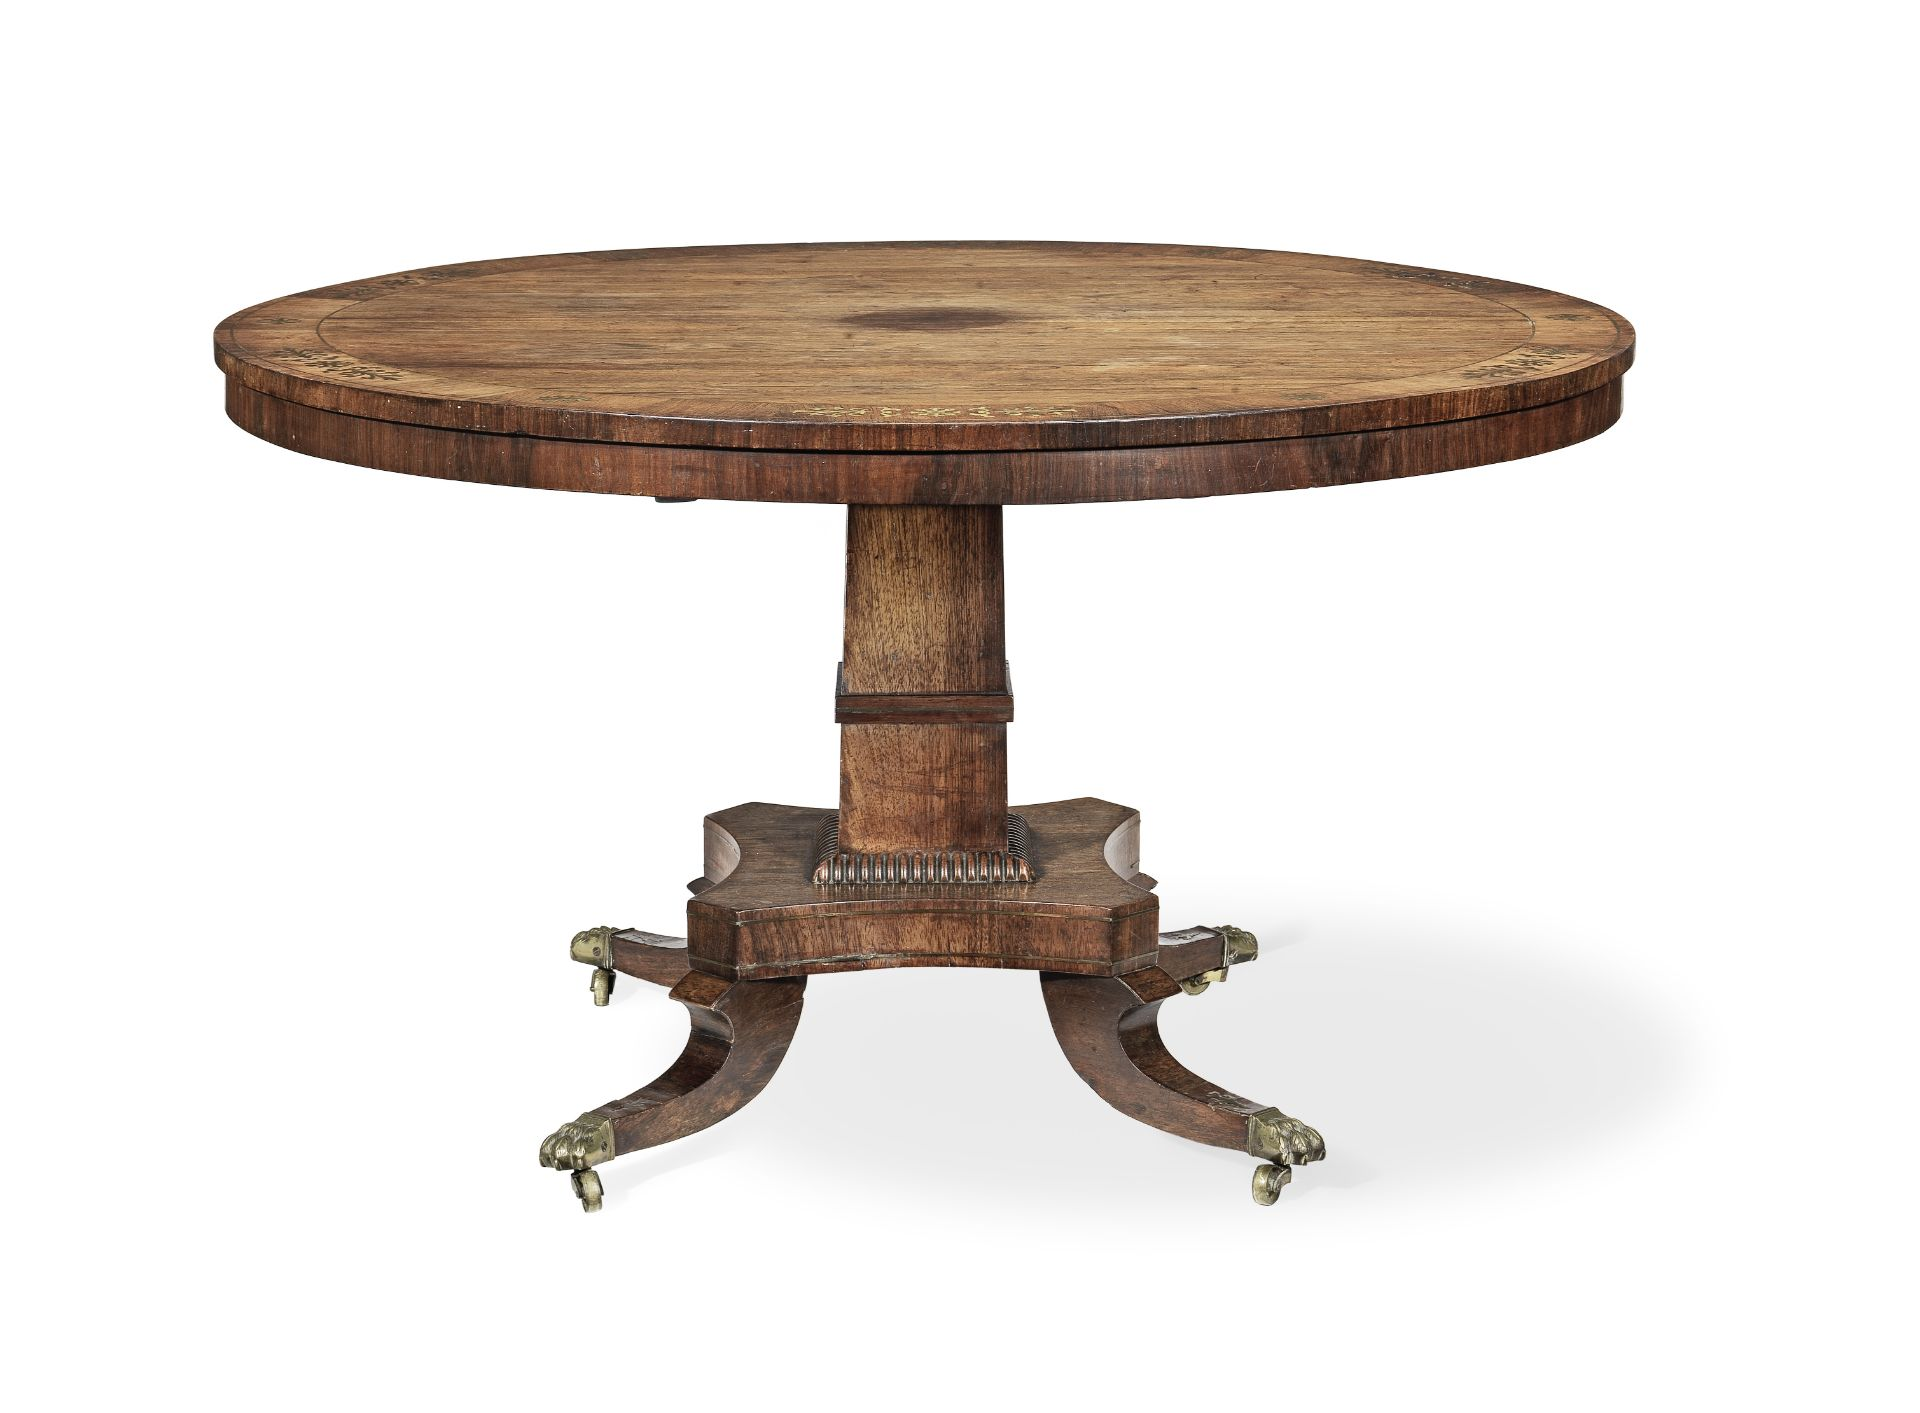 Los 112 - A Regency rosewood and brass inlaid breakfast table in the manner of George Oakley